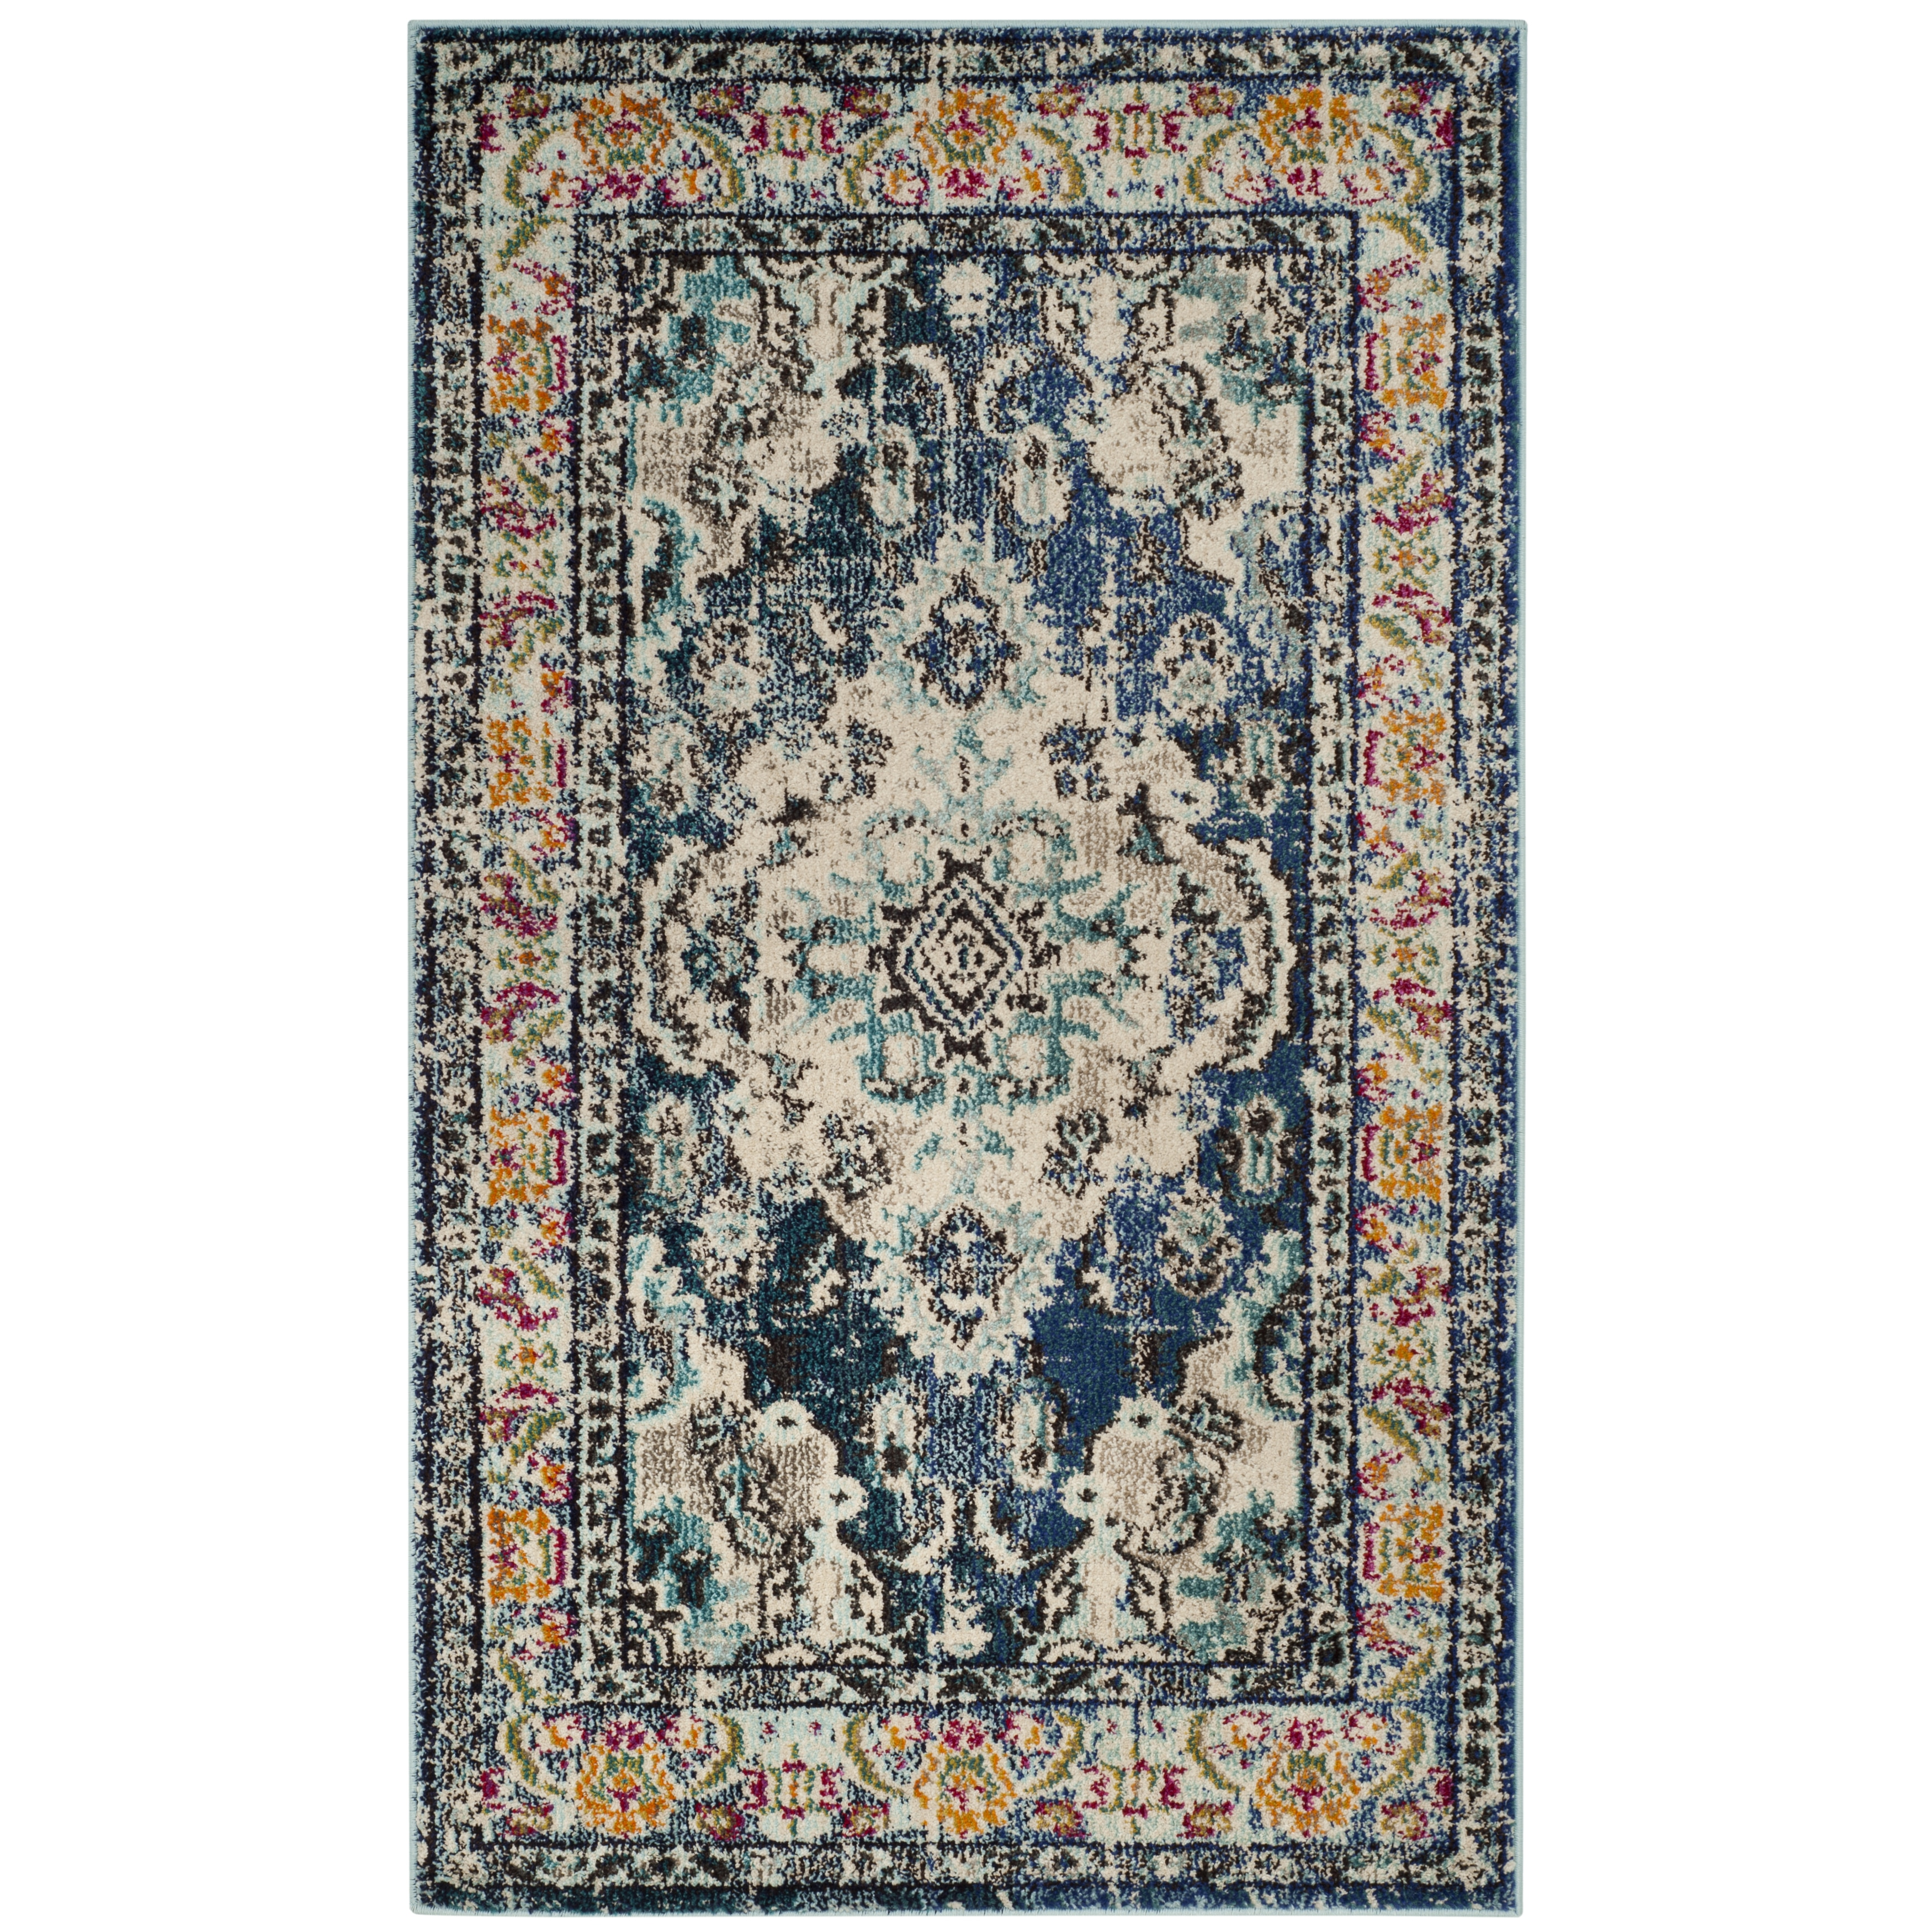 garden rug safavieh product shag home milan free x today shipping navy blue overstock